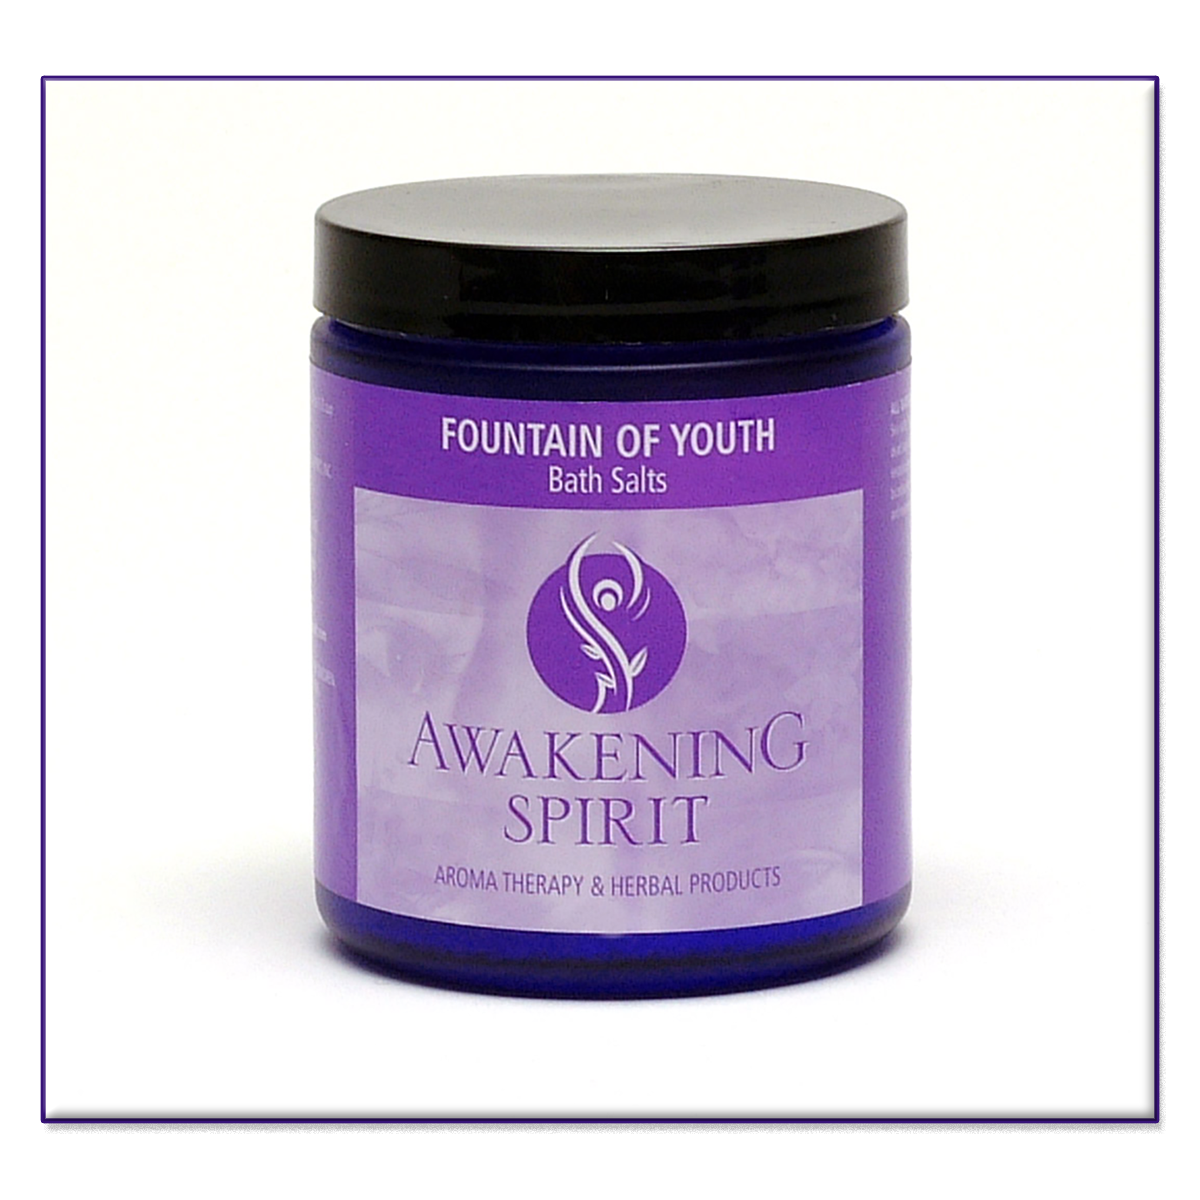 Fountain of Youth Bath Salt